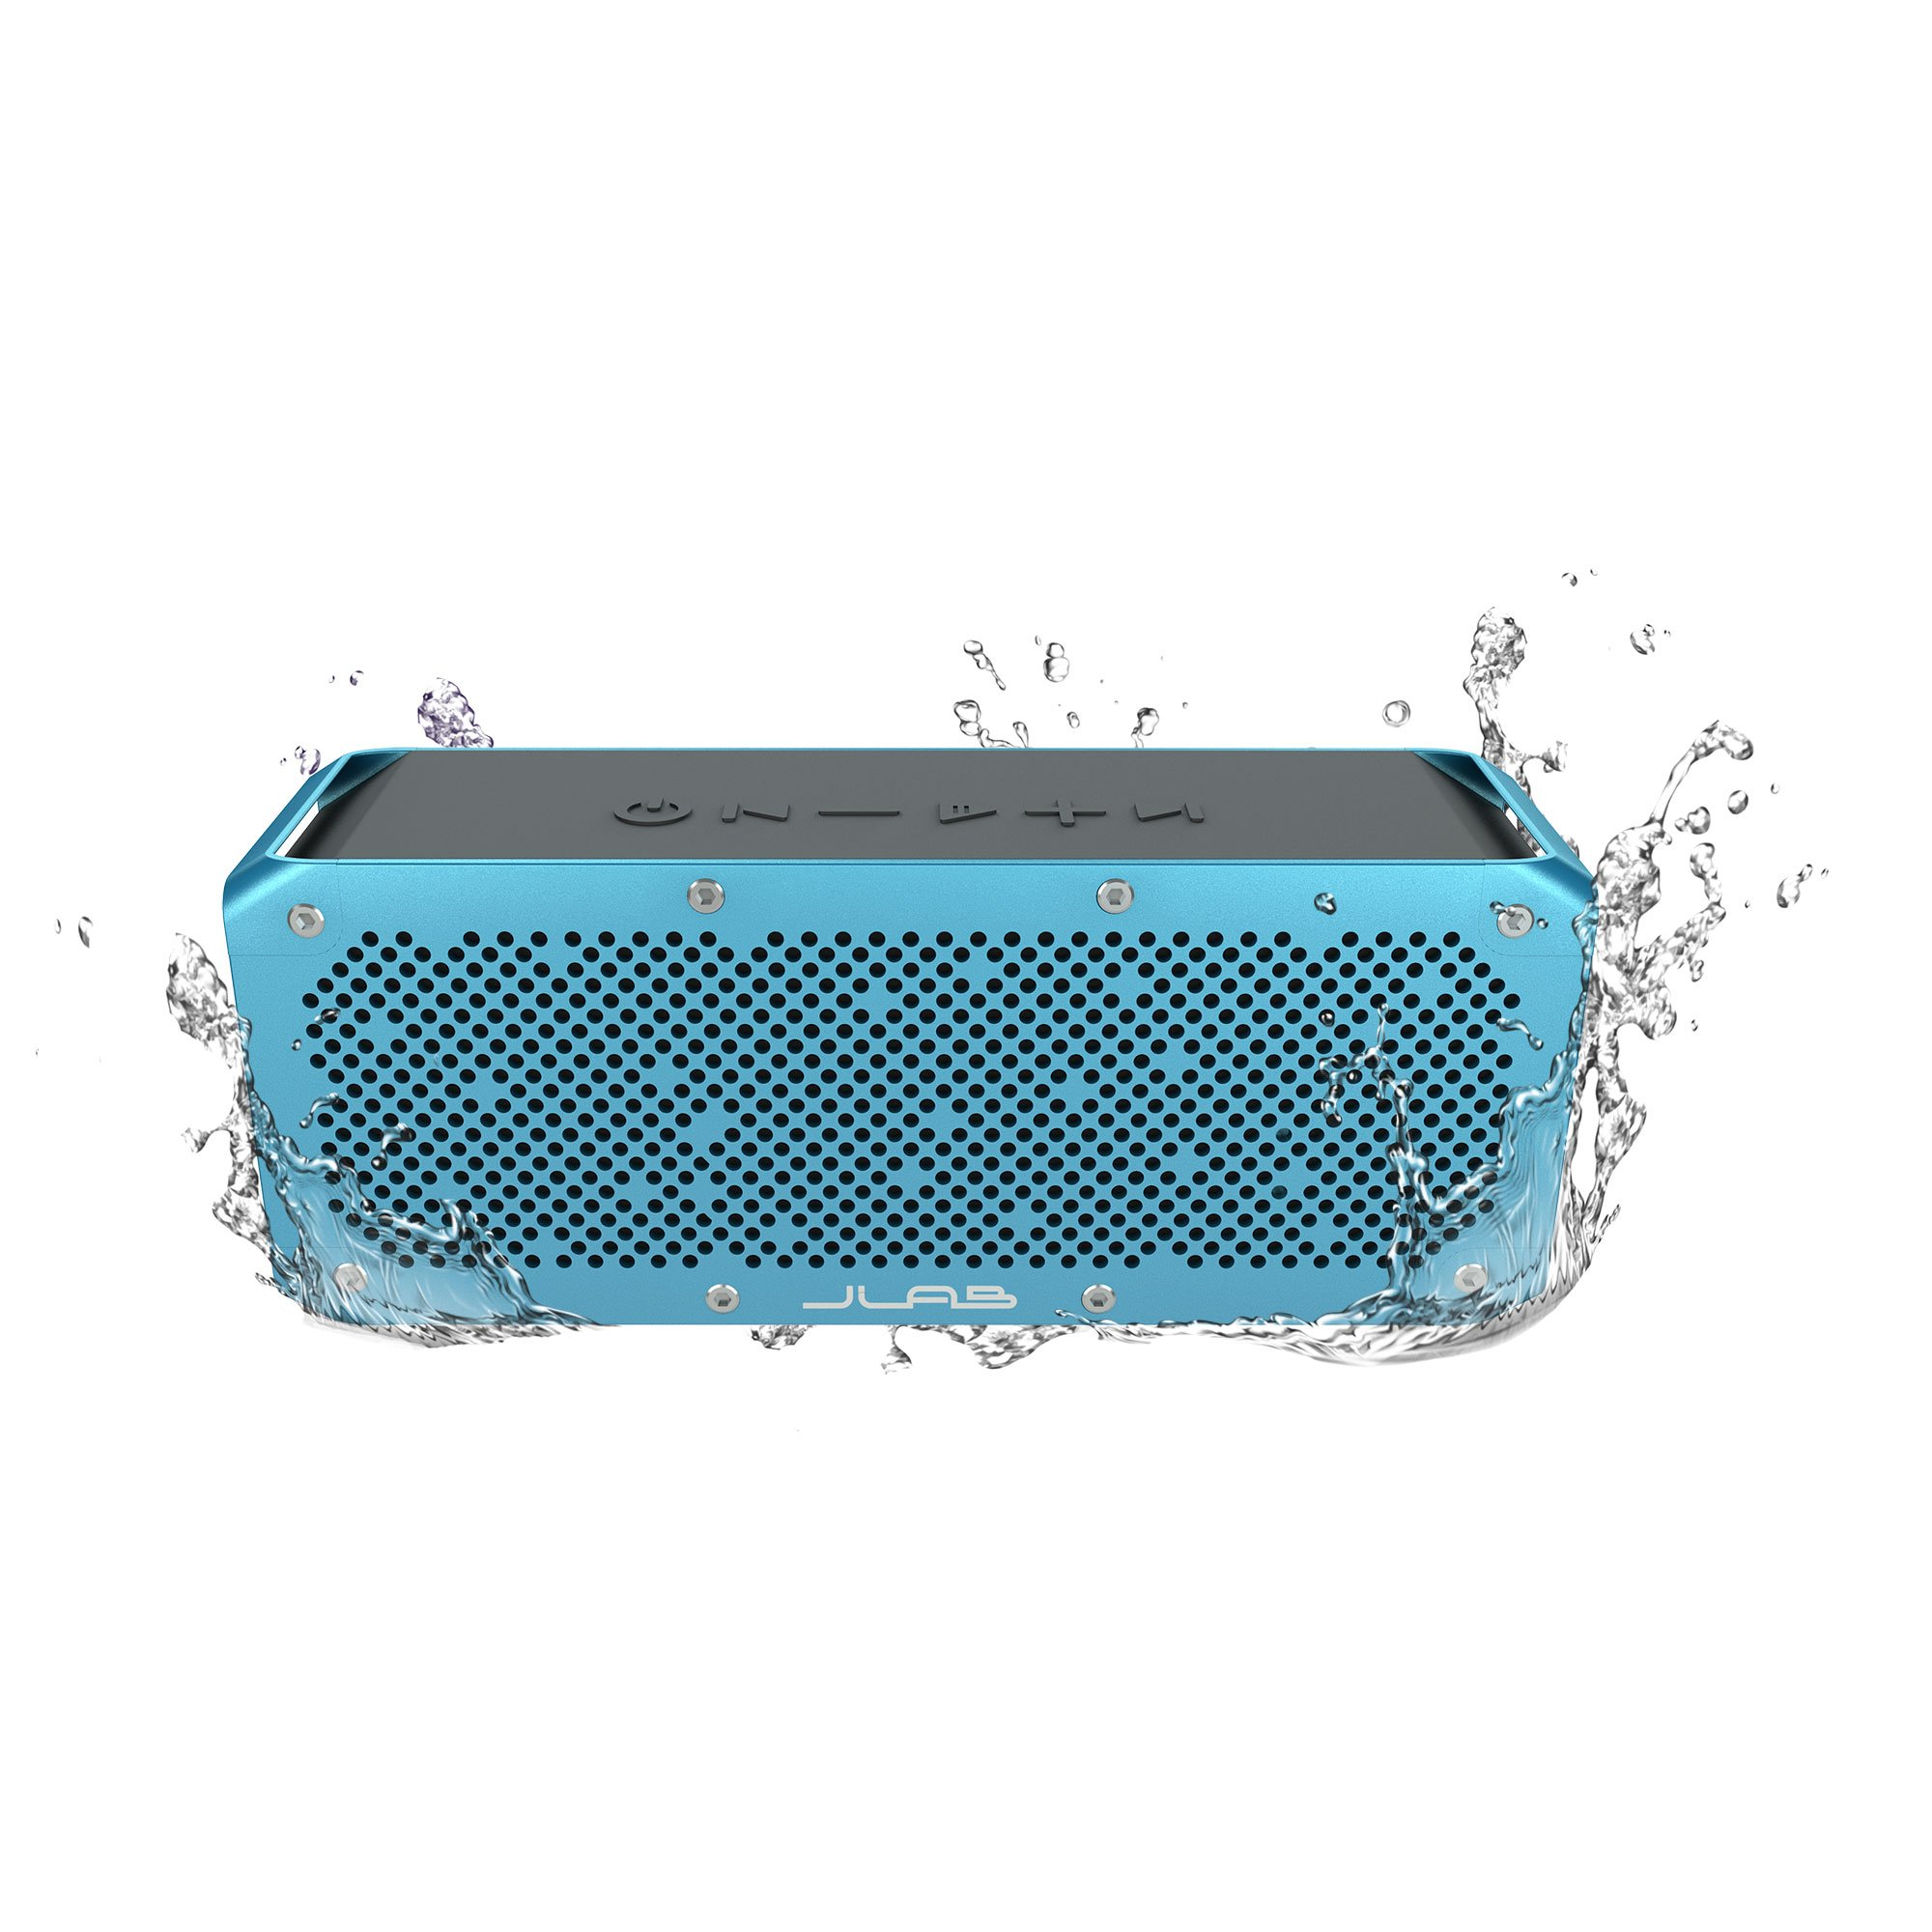 JLab Audio Crasher XL Splashproof Portable Bluetooth Speaker, 30 WATTS of Audio POWER, 13 hr Battery Life, connect to any Bluetooth device (phone, tablet, computer and more)